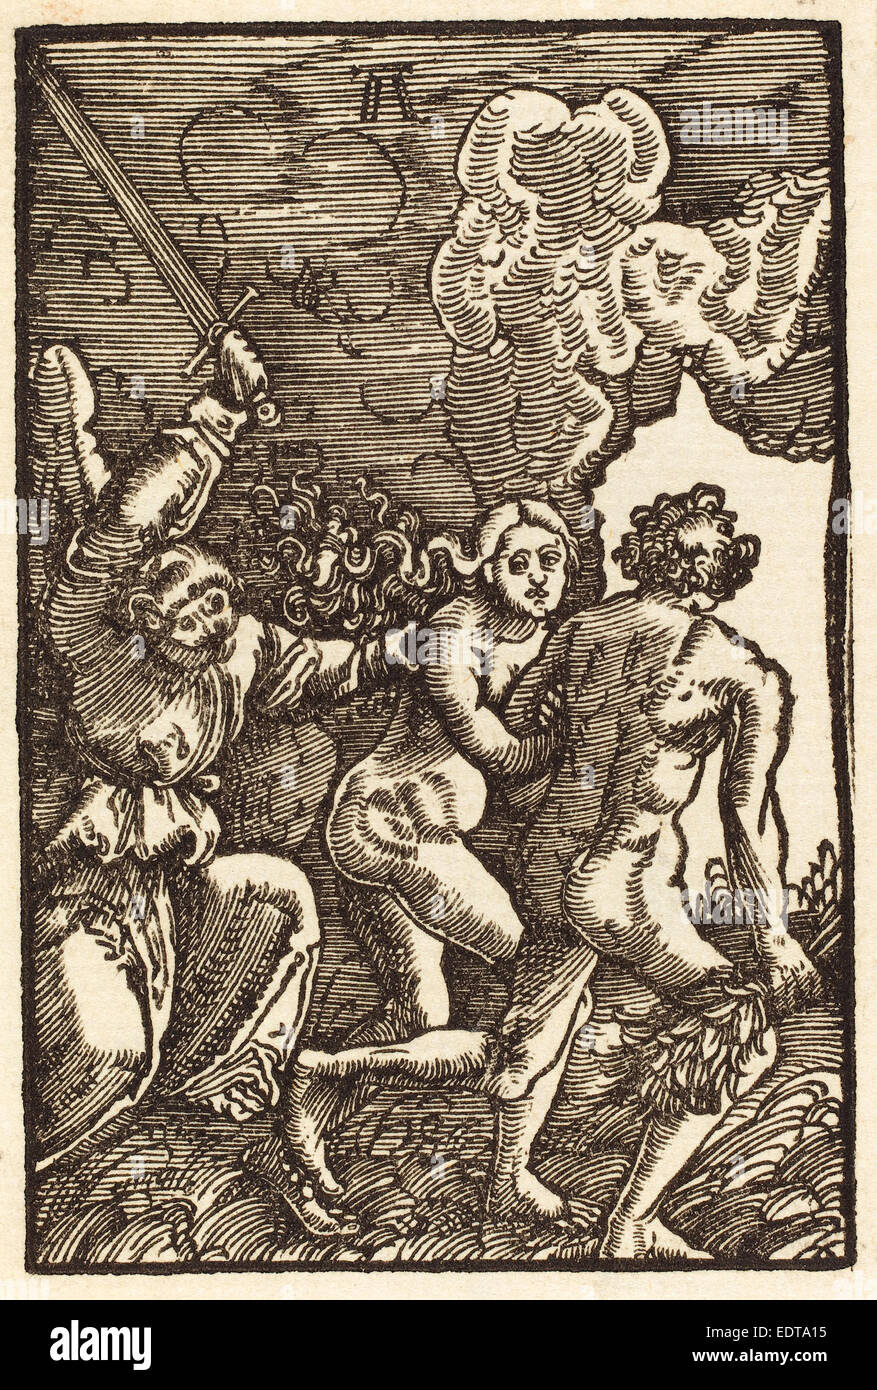 Albrecht Altdorfer (German, 1480 or before - 1538), Expulsion from Paradise, c. 1513, woodcut - Stock Image